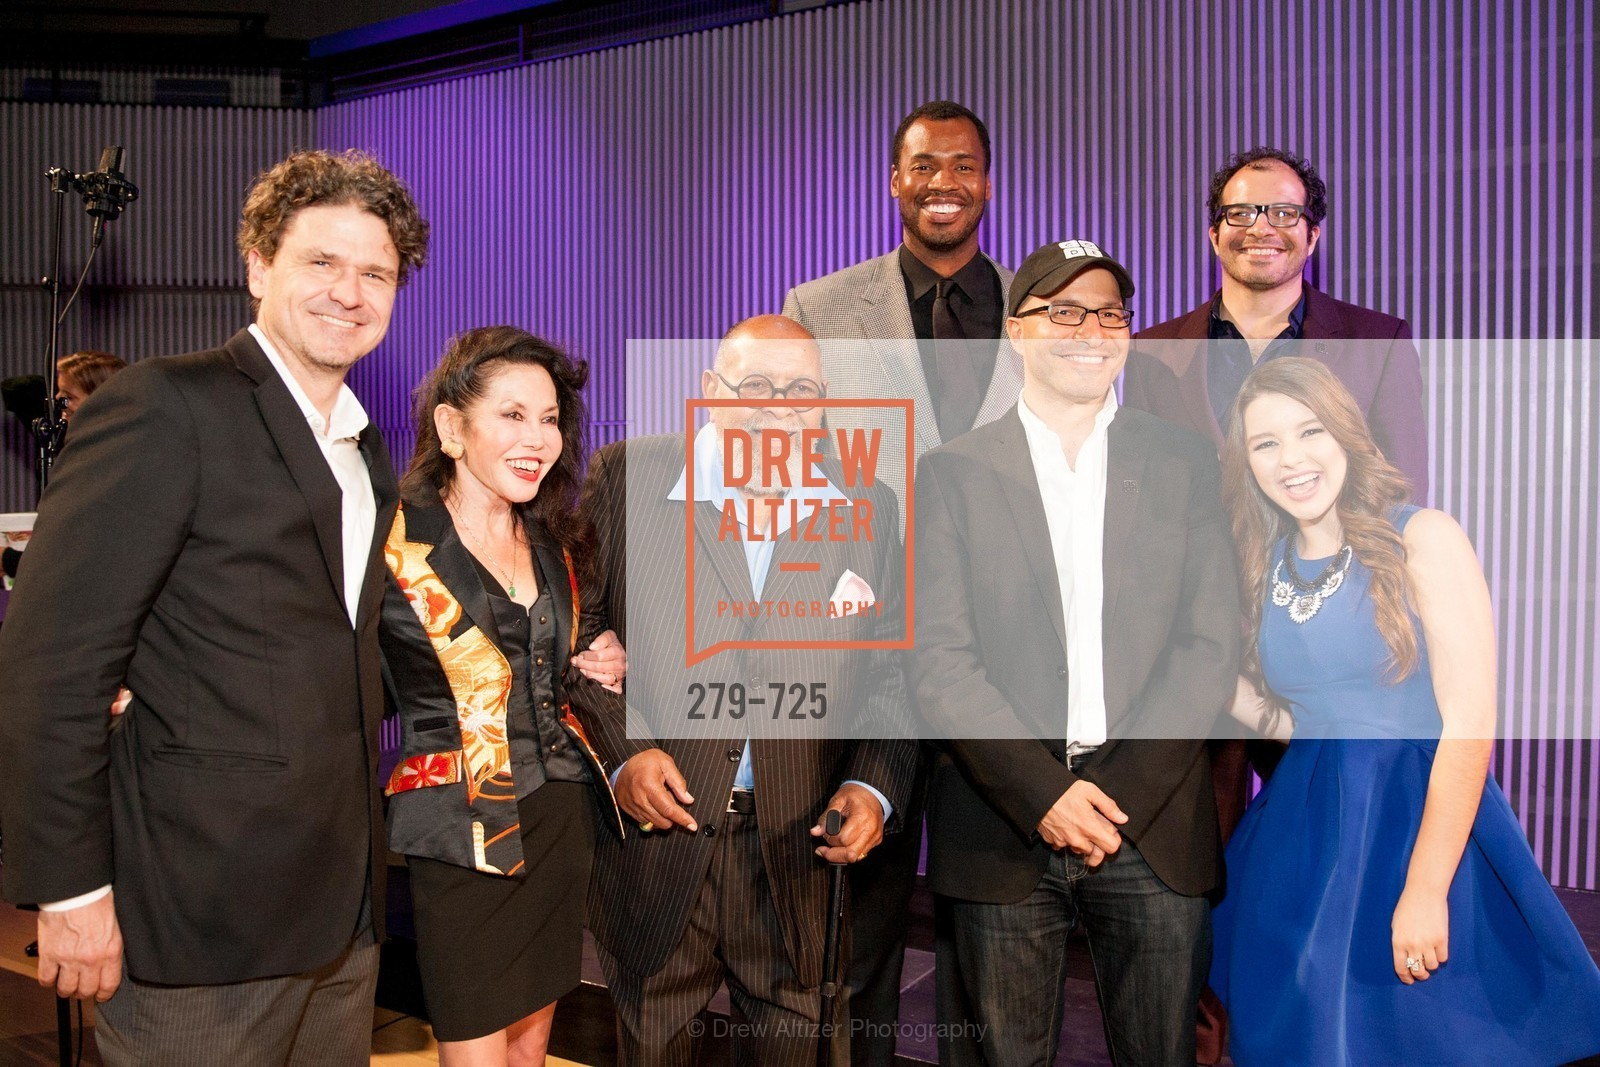 Dave Eggers, Janice Mirikitani, Reverend Cecil Williams, Jason Collins, Hadi Partovi, Ali Partovi, COMMON SENSE Media Awards 2015, US, May 14th, 2015,Drew Altizer, Drew Altizer Photography, full-service agency, private events, San Francisco photographer, photographer california